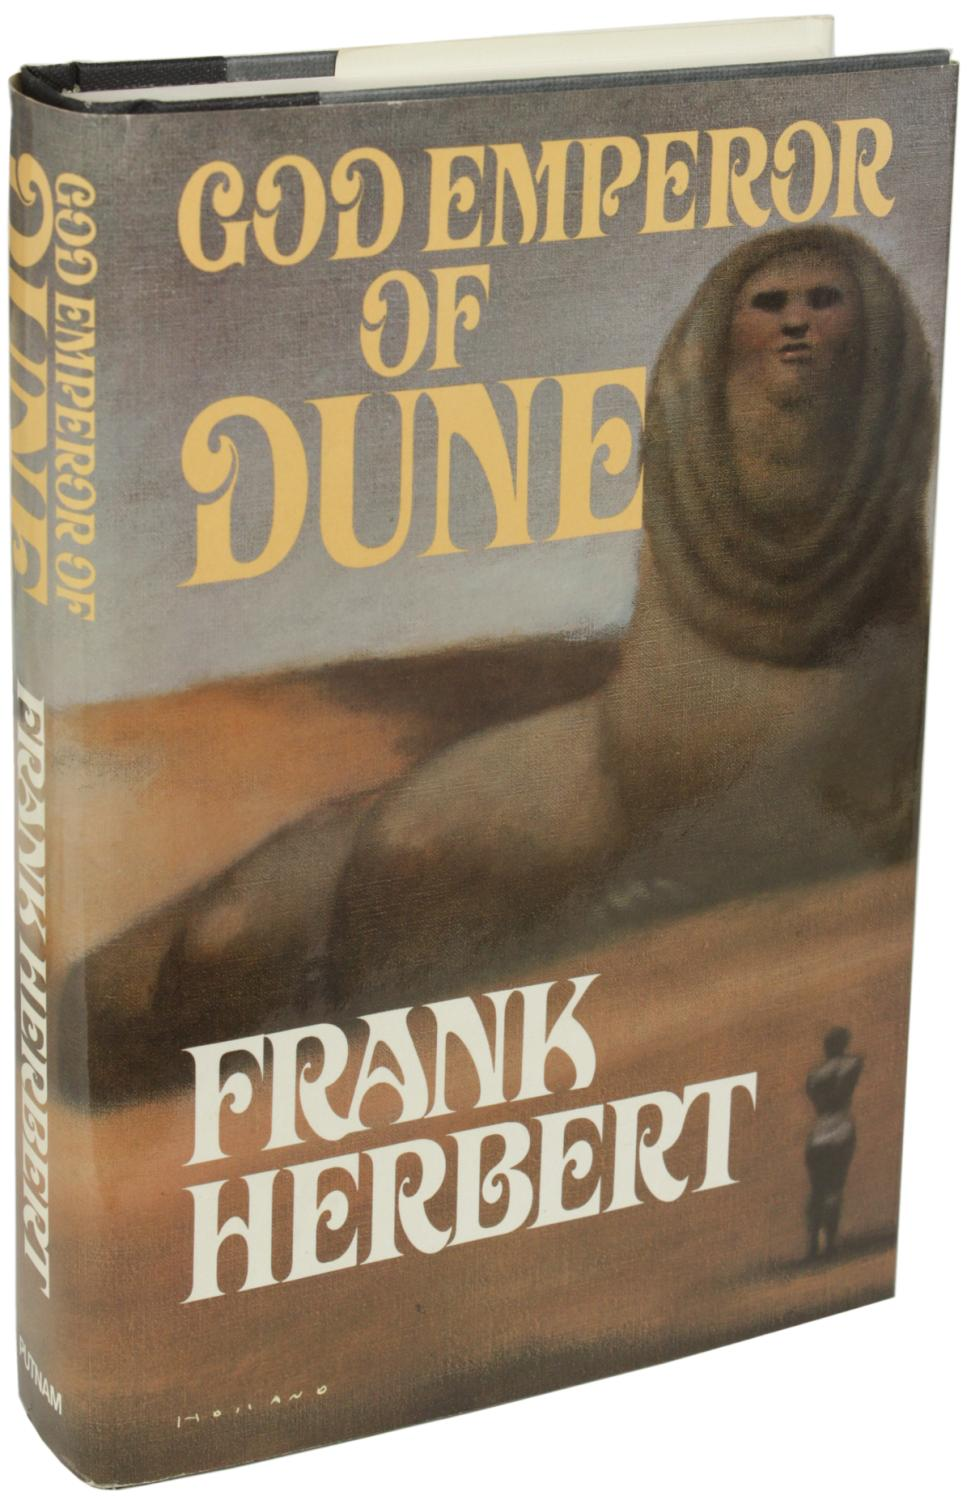 a book analysis of god emperor of dune by frank herbert God emperor of dune summary & study guide includes comprehensive information and analysis to help you understand the book on god emperor of dune by frank herbert.